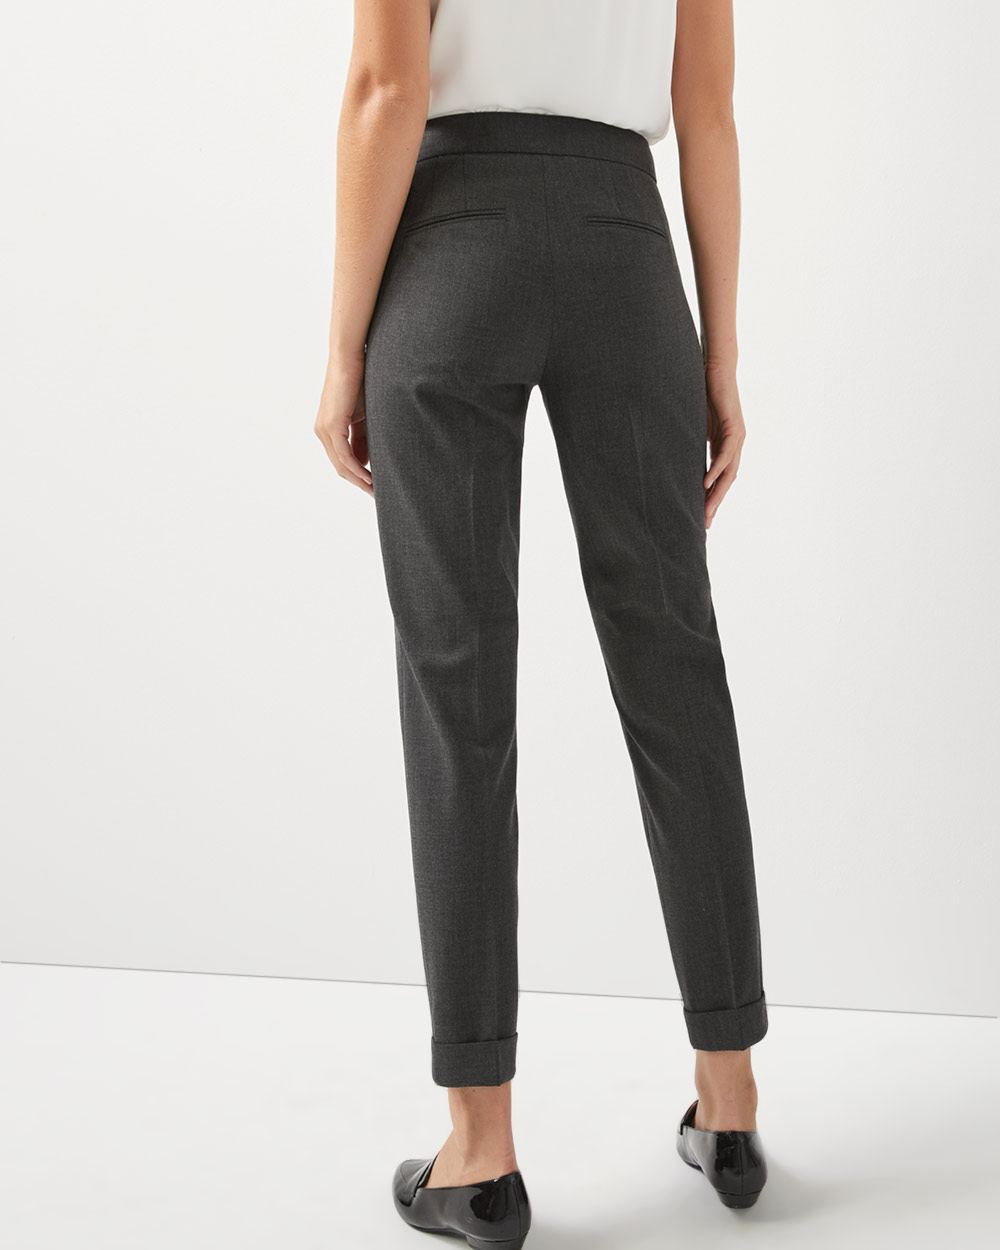 Heather grey Stretch Curvy fit Slim leg cuffed Ankle Pant